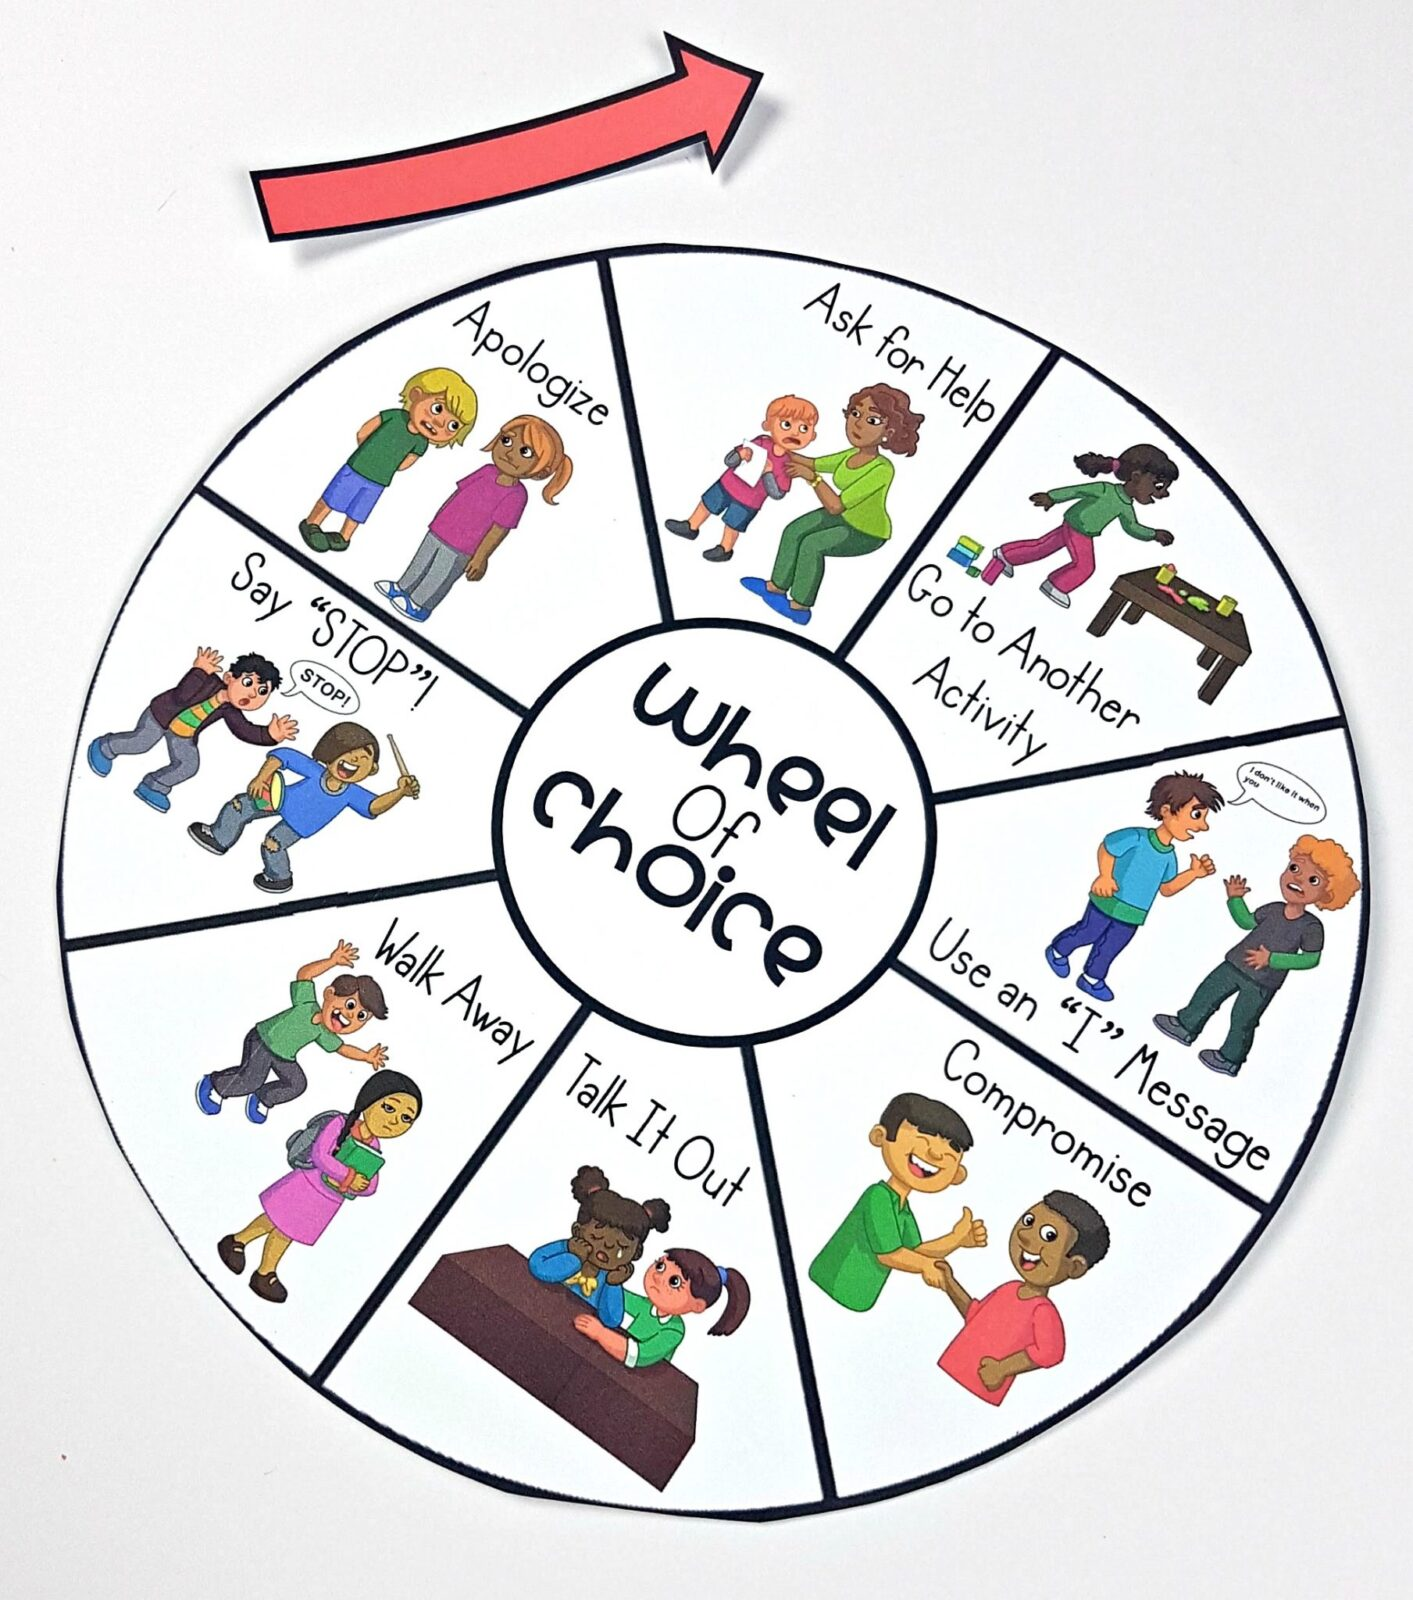 wheel of choice ways to solve problems conflict resolution activity